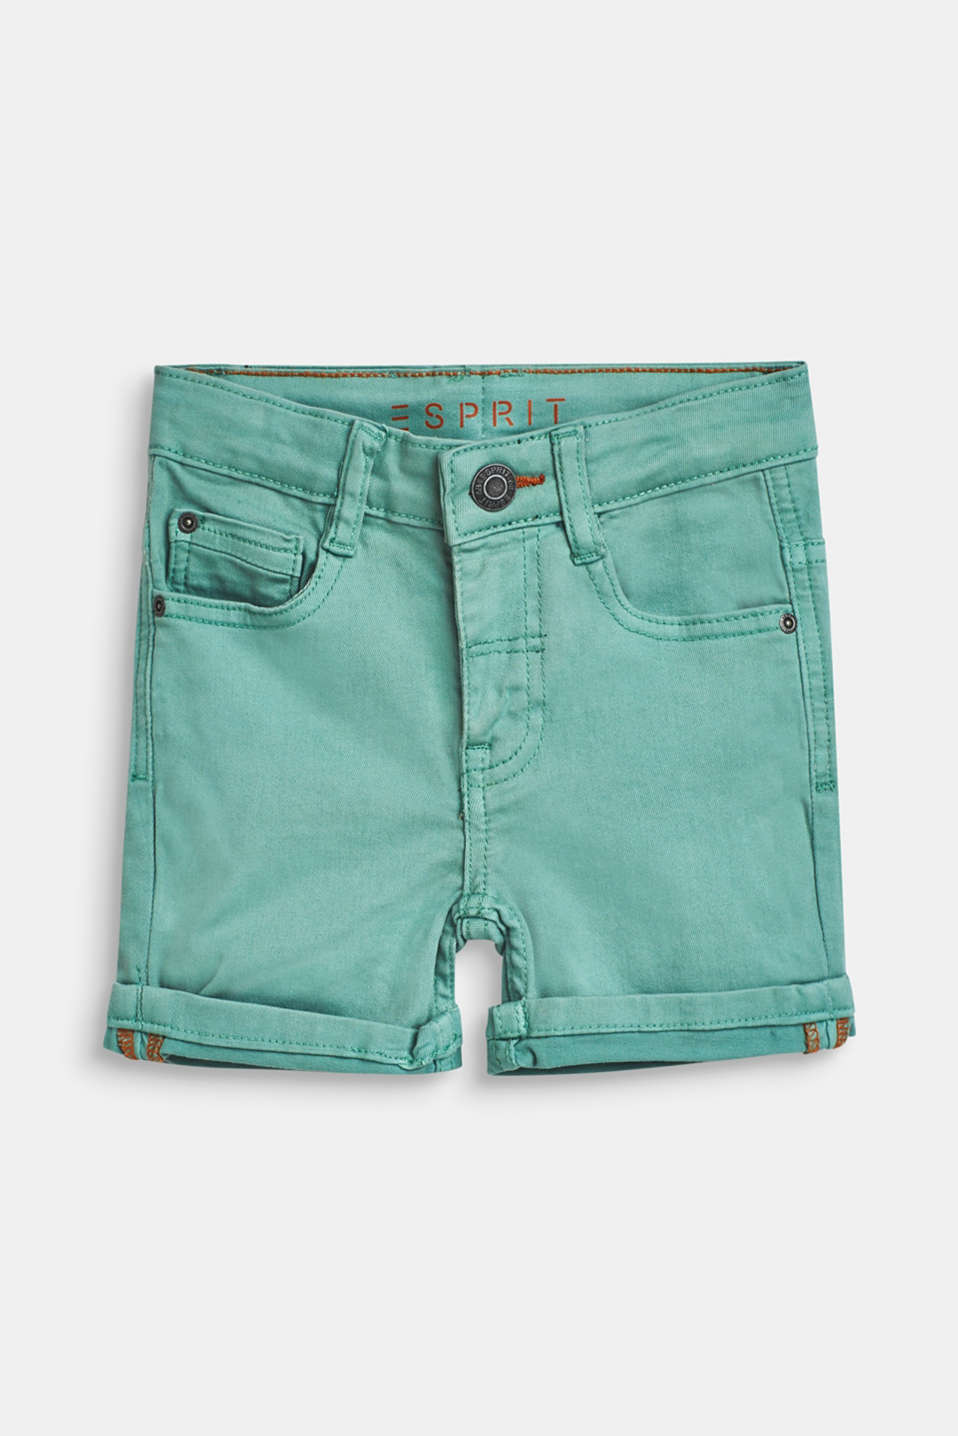 Esprit - Stretch denim shorts in a fashion colour